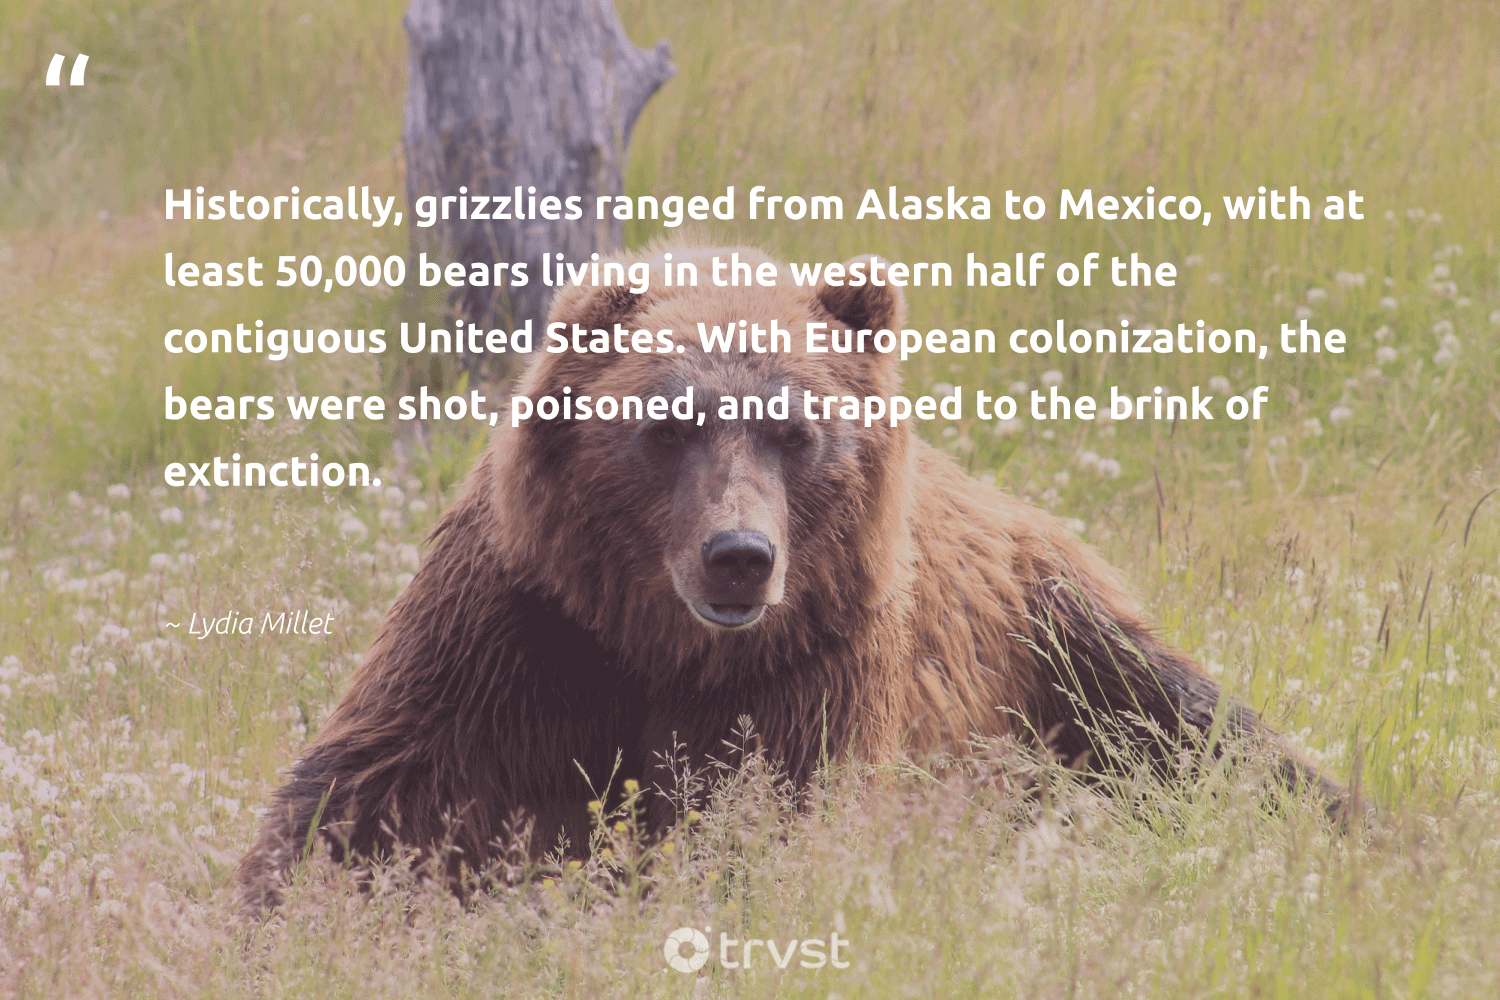 """""""Historically, grizzlies ranged from Alaska to Mexico, with at least 50,000 bears living in the western half of the contiguous United States. With European colonization, the bears were shot, poisoned, and trapped to the brink of extinction.""""  - Lydia Millet #trvst #quotes #extinction #bears #endangered #wild #natural #dotherightthing #endangeredspecies #conservation #geology #planetearthfirst"""